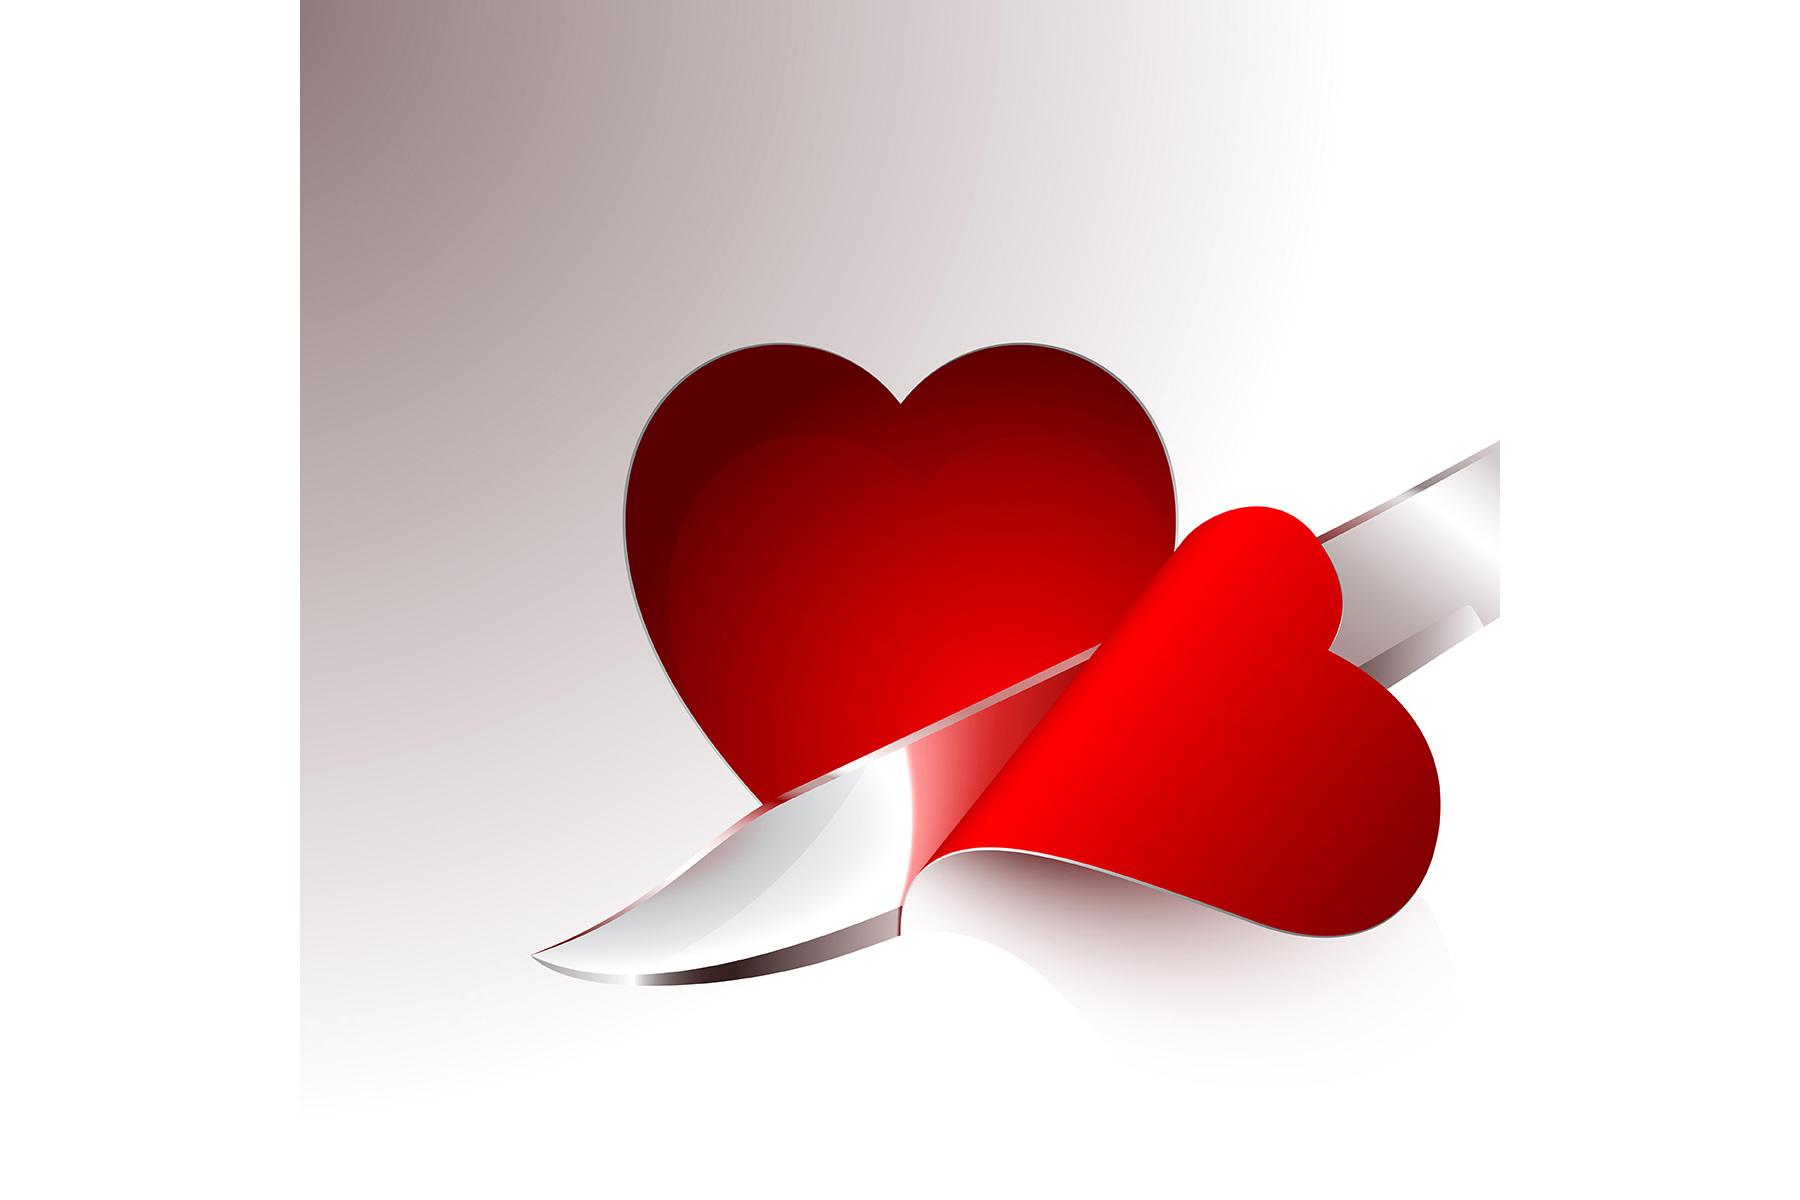 Vector Cut a slice of red heart example image 1